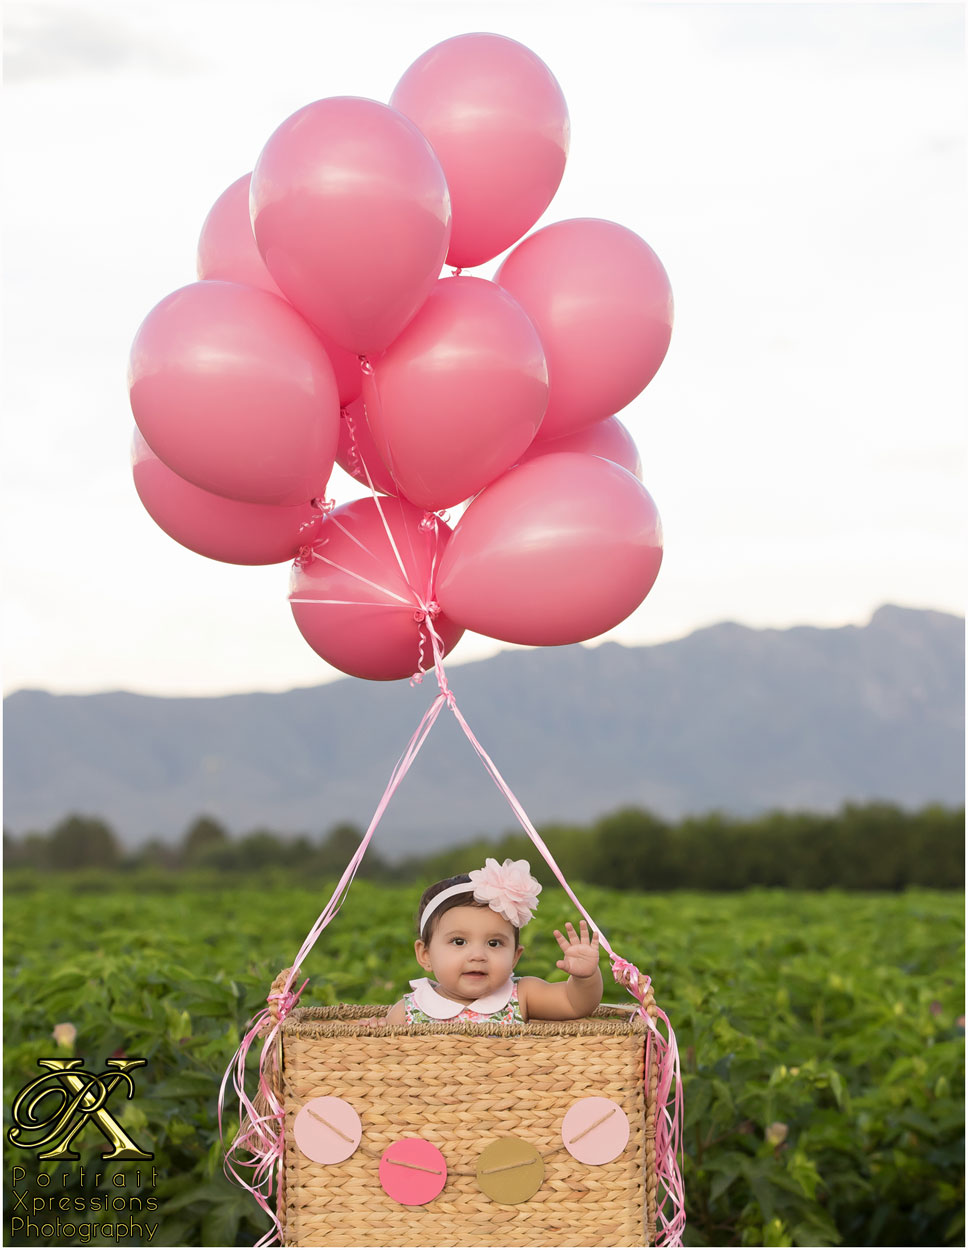 baby in basket with pink balloons